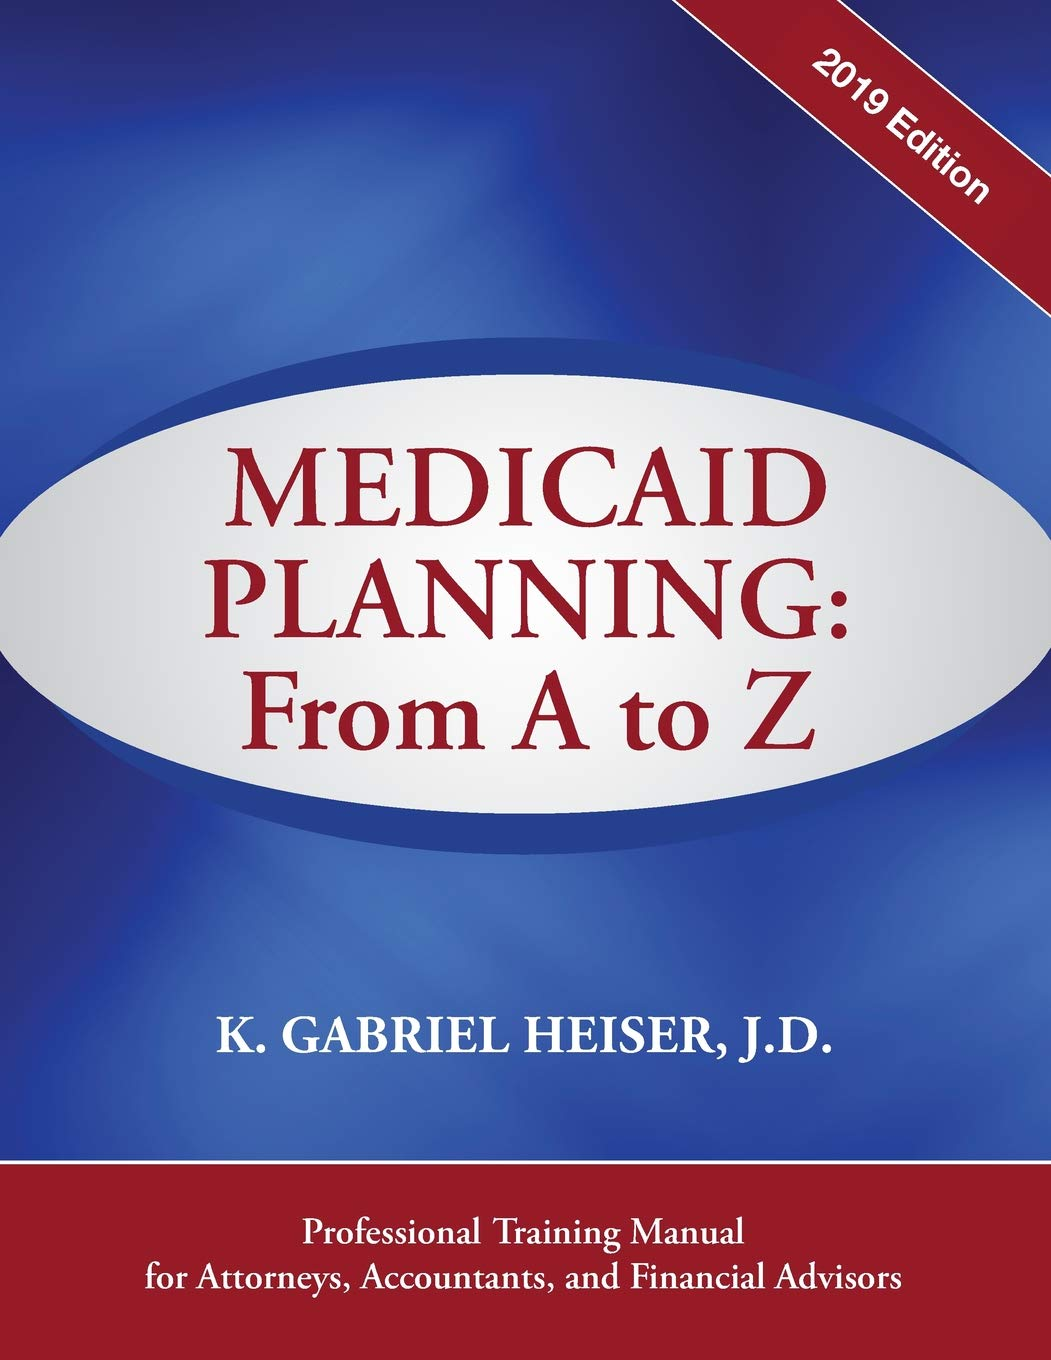 Medicaid Planning: A to Z (2019 ed.)